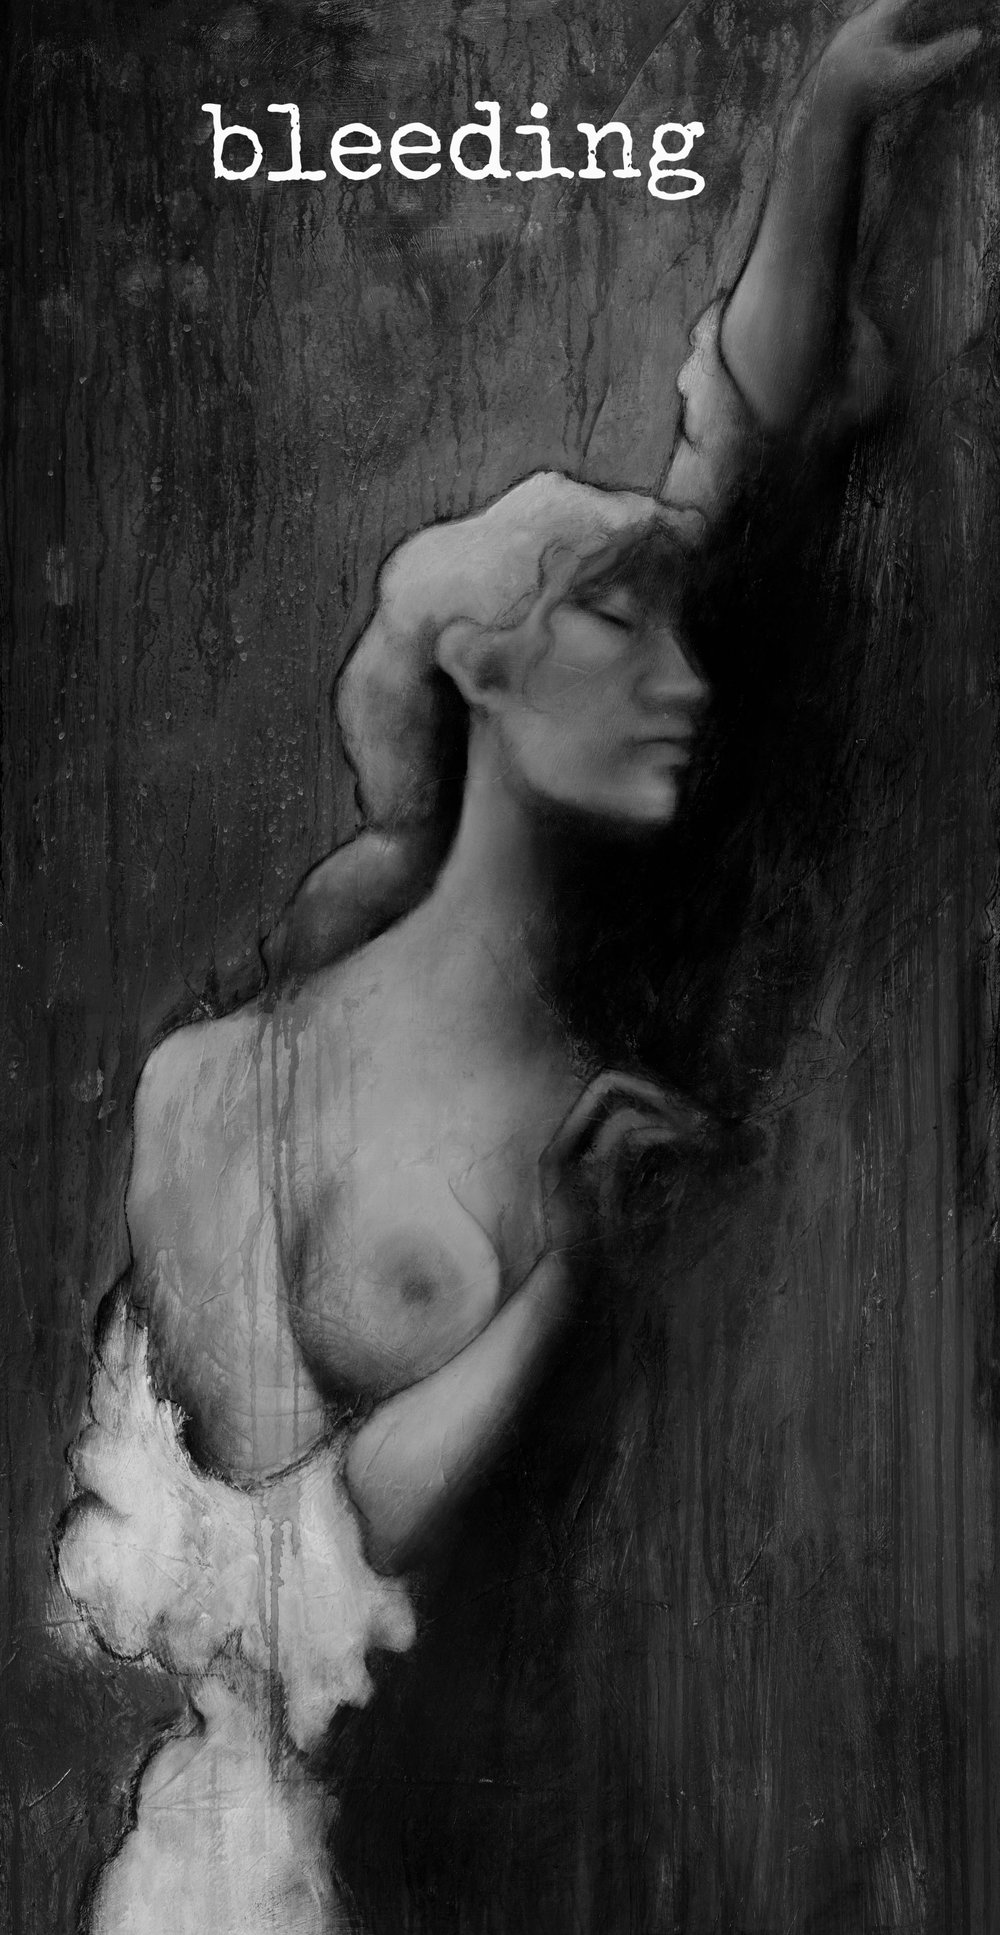 Abandoned by her childrenNature quietly mournsMistreated, hurtNature silently weepsWounded, drainedNature slowly withersAgonizing until her open wound cover the earth -